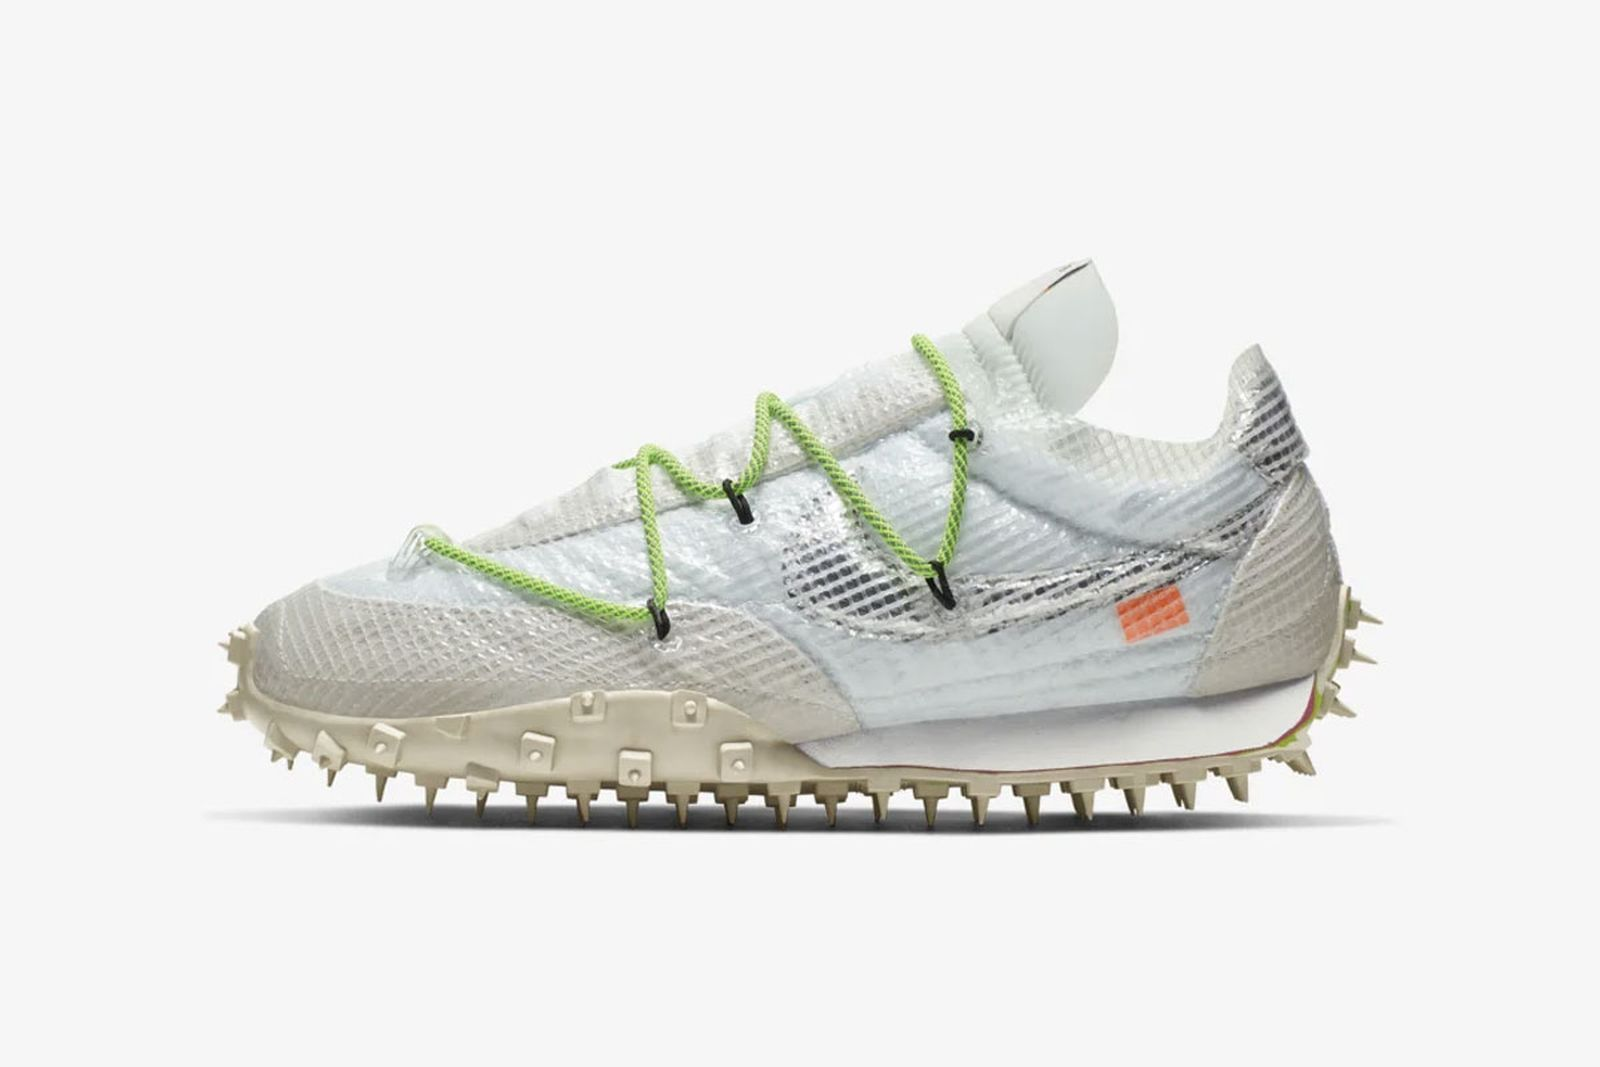 off-white-nike-waffle-racer-sp-release-date-price-09